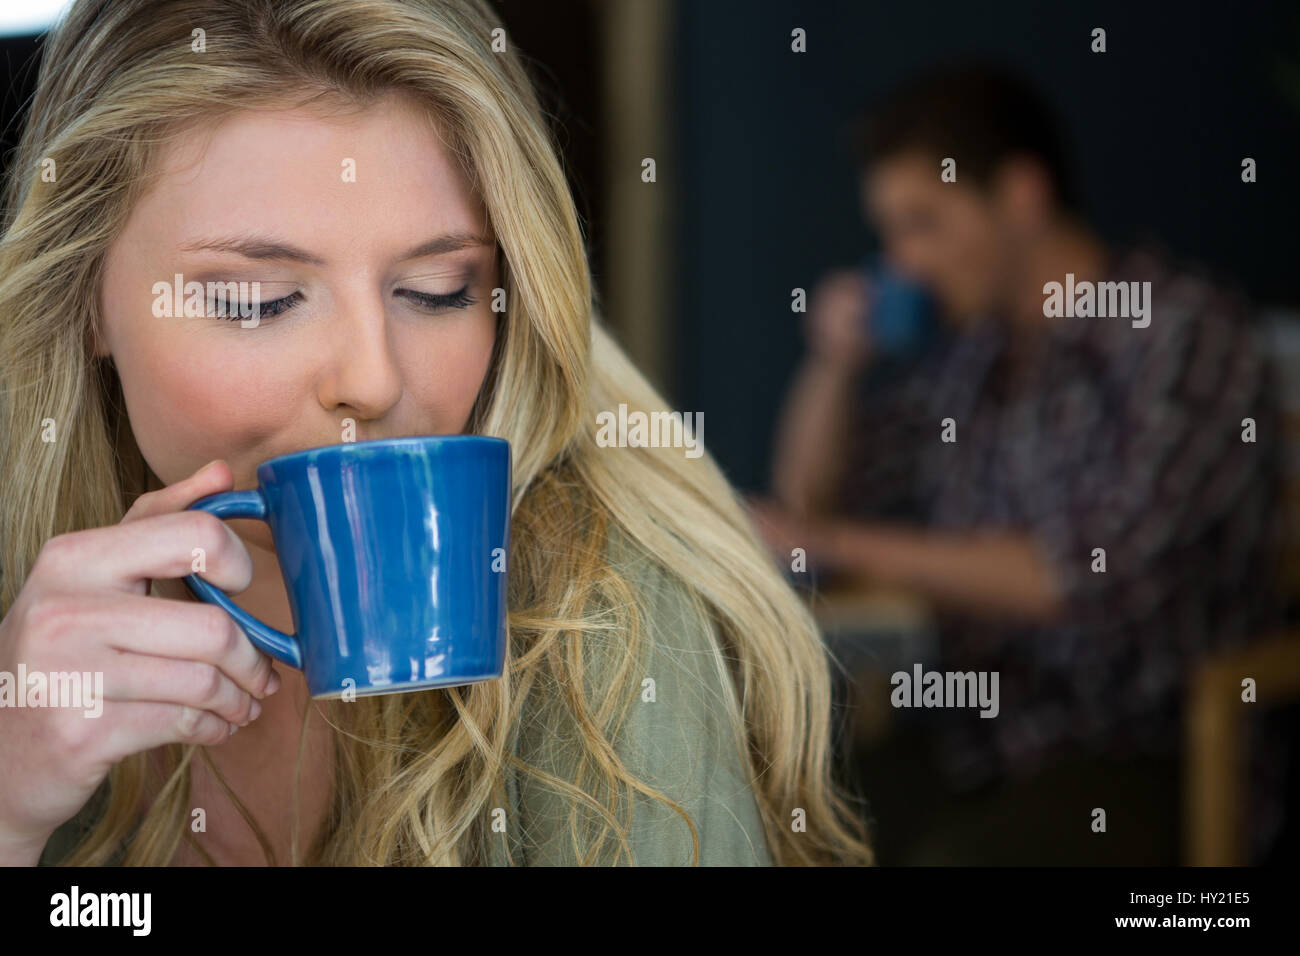 Close-up of young woman drinking coffee in cafeteria Stock Photo